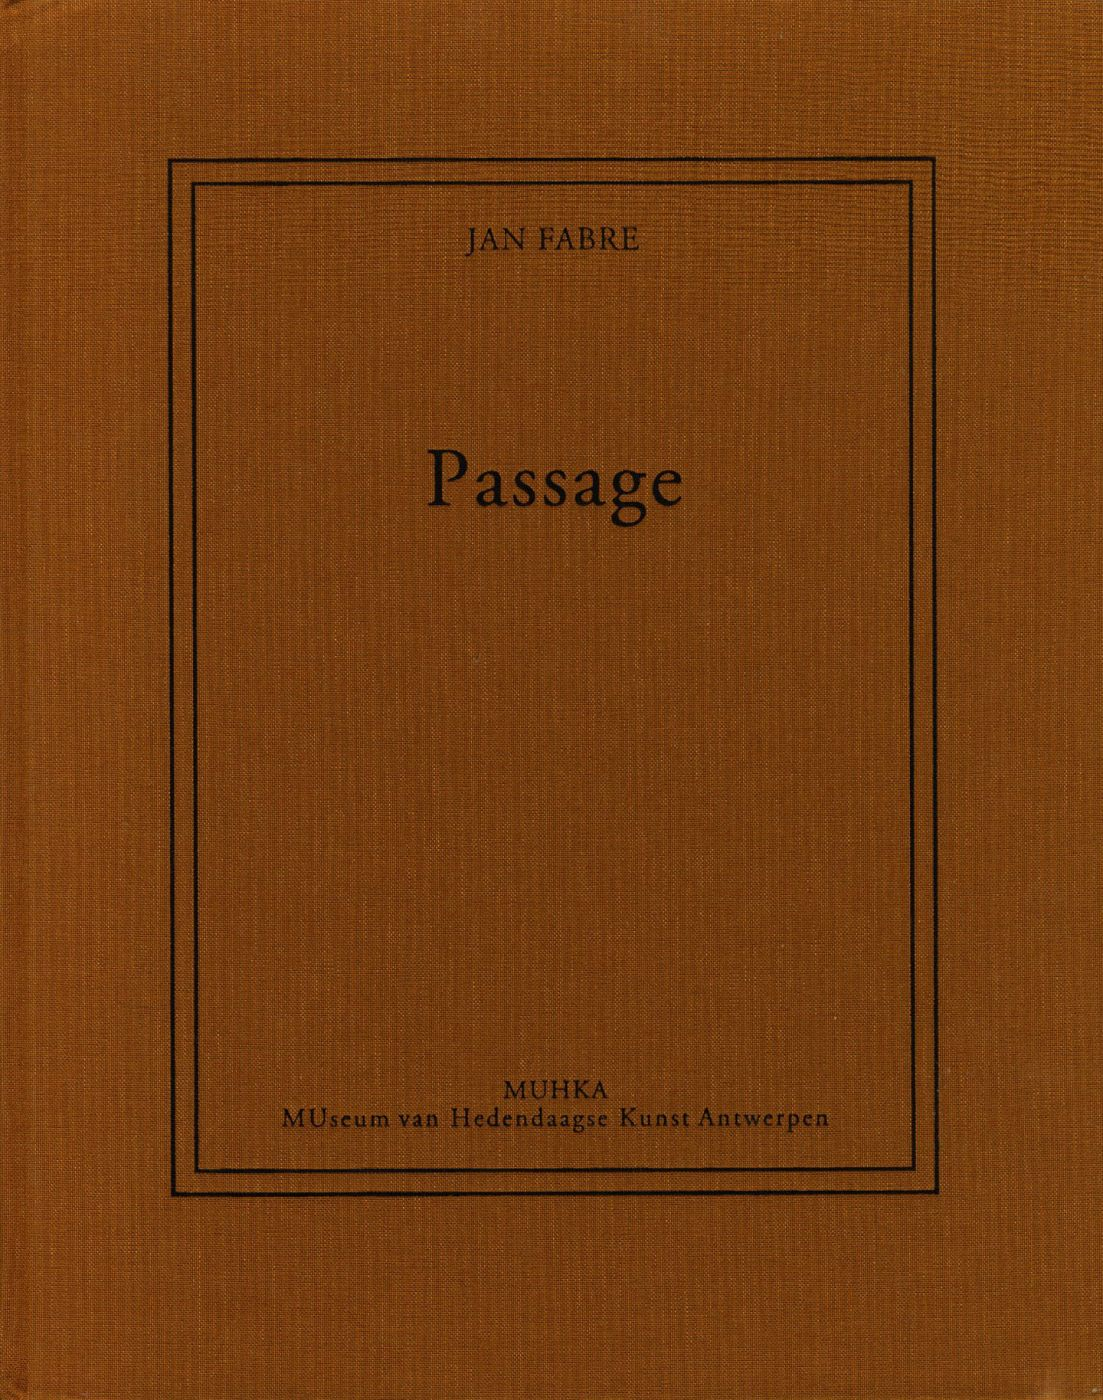 Jan Fabre: Passage